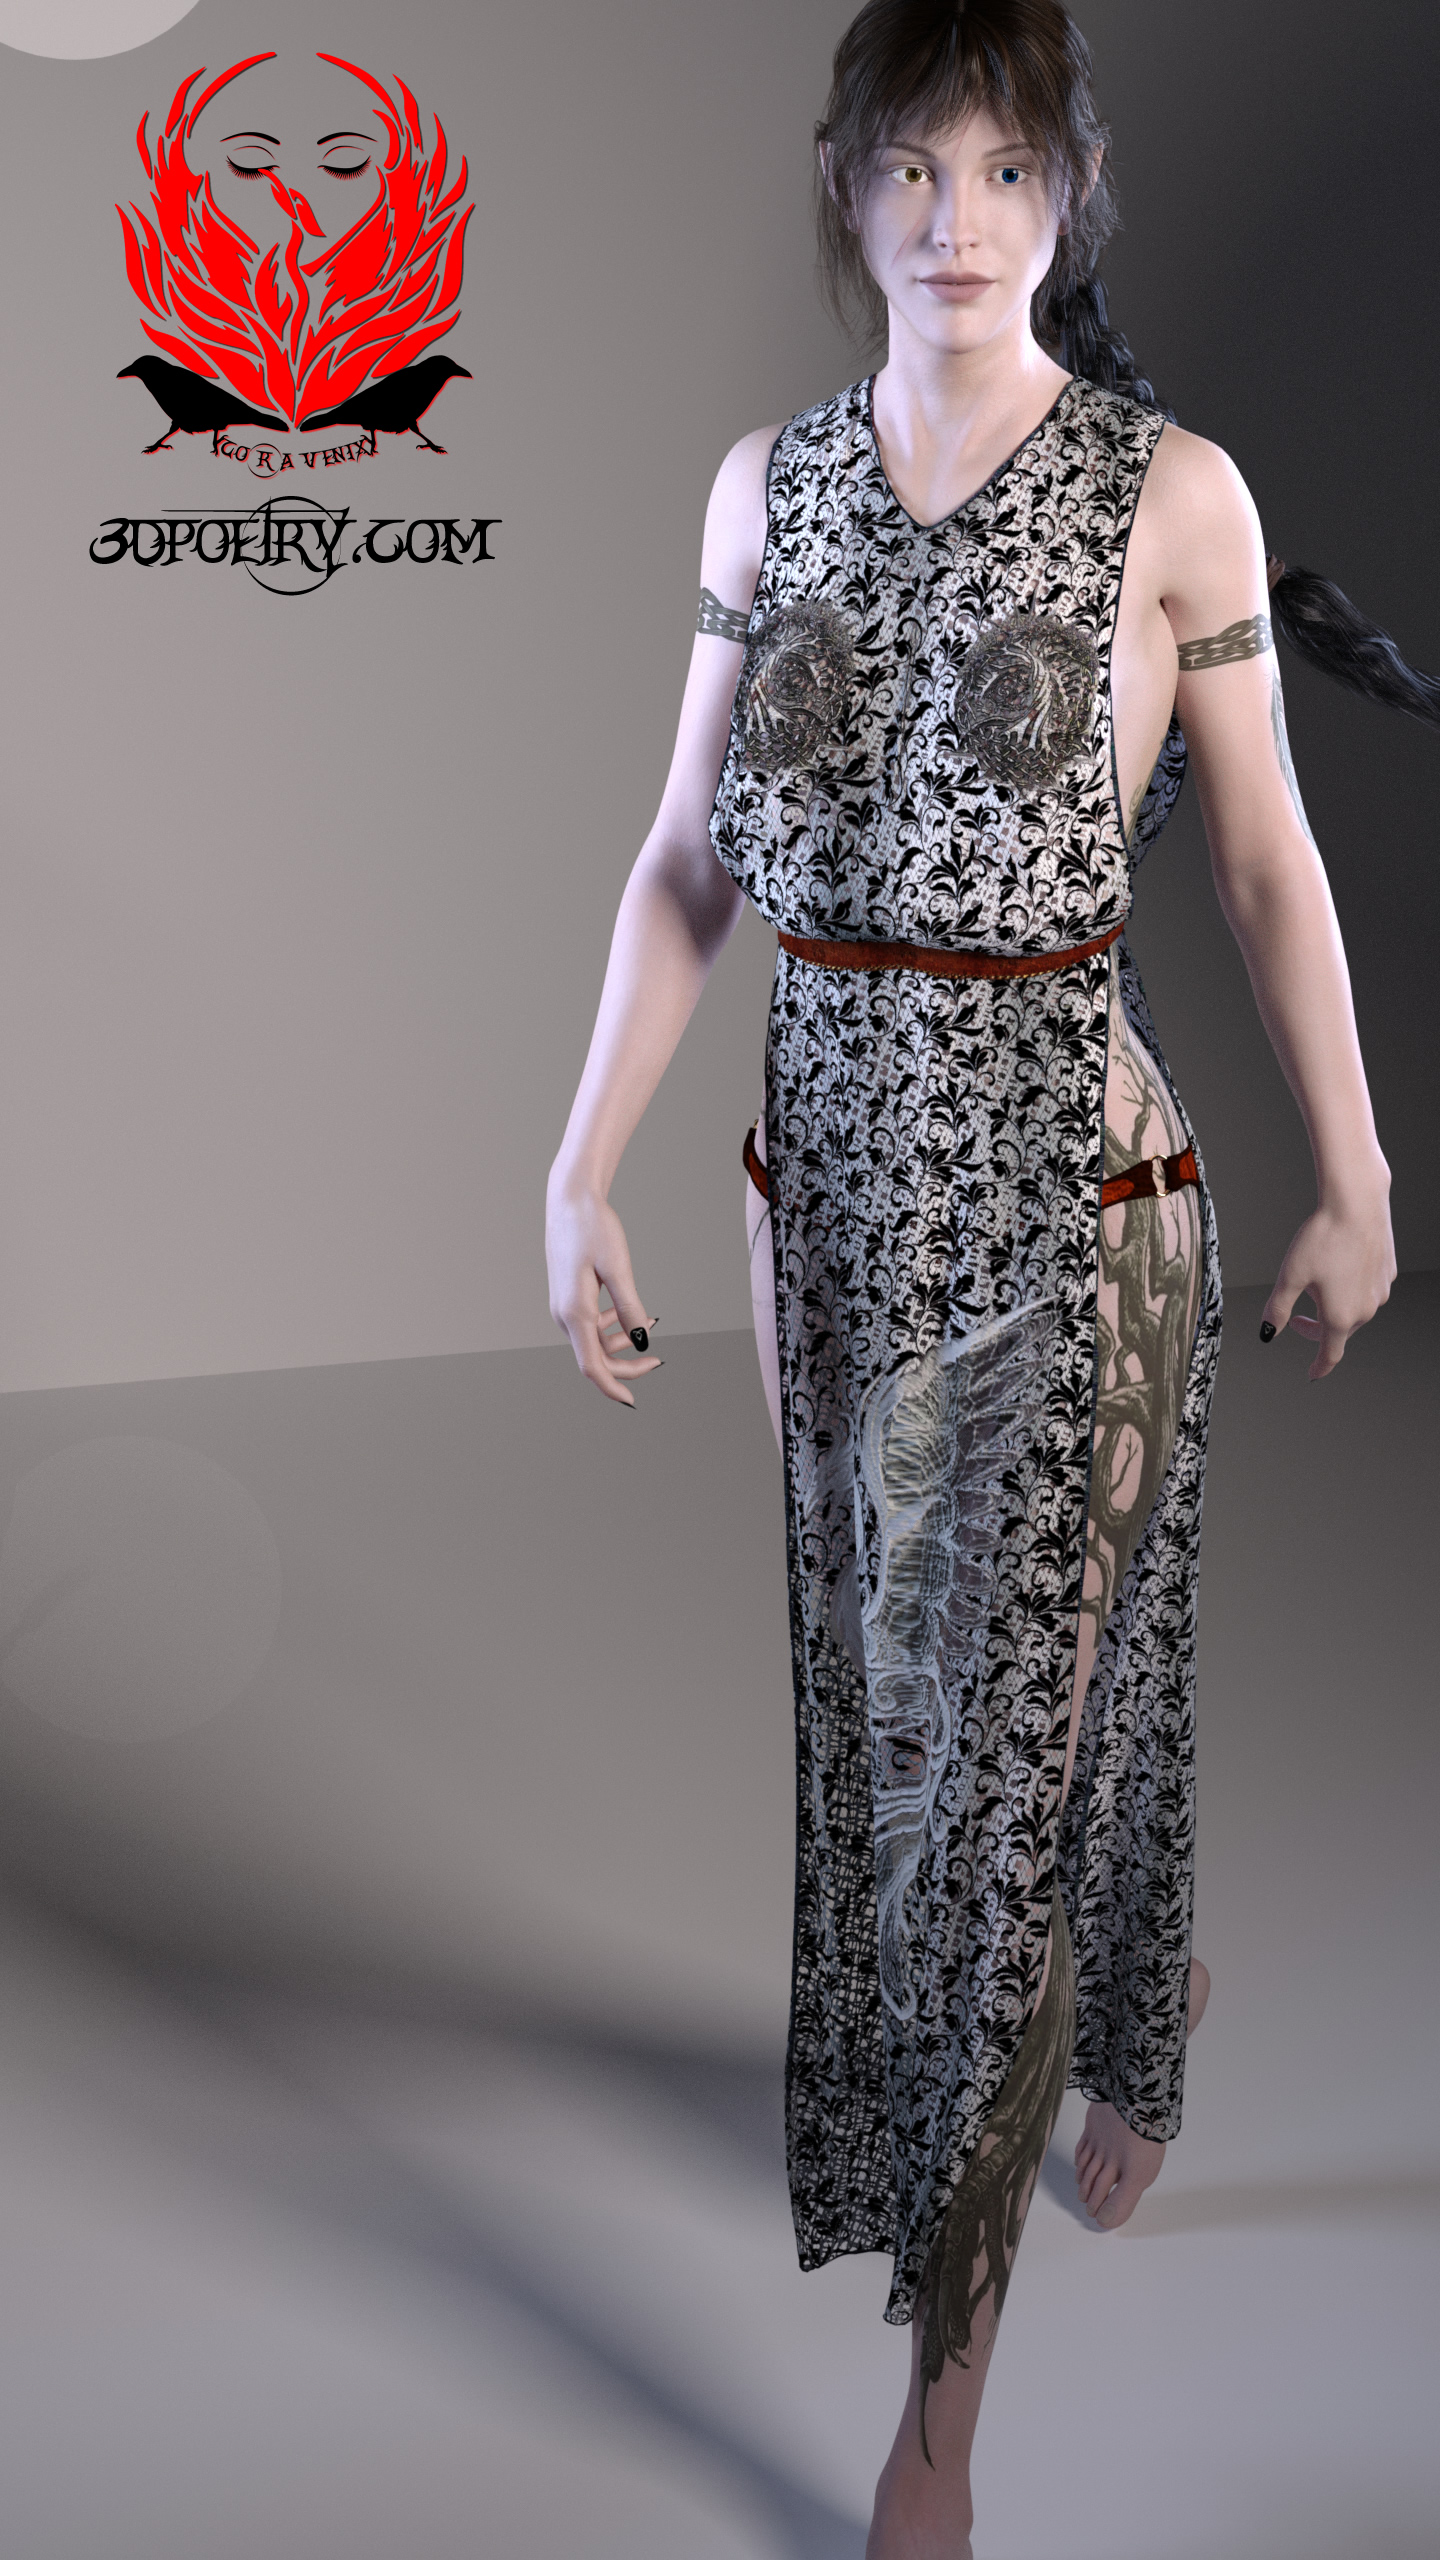 Been working flat out on Cora Venix's new outfits.  This is a test render at 50  ... see more below